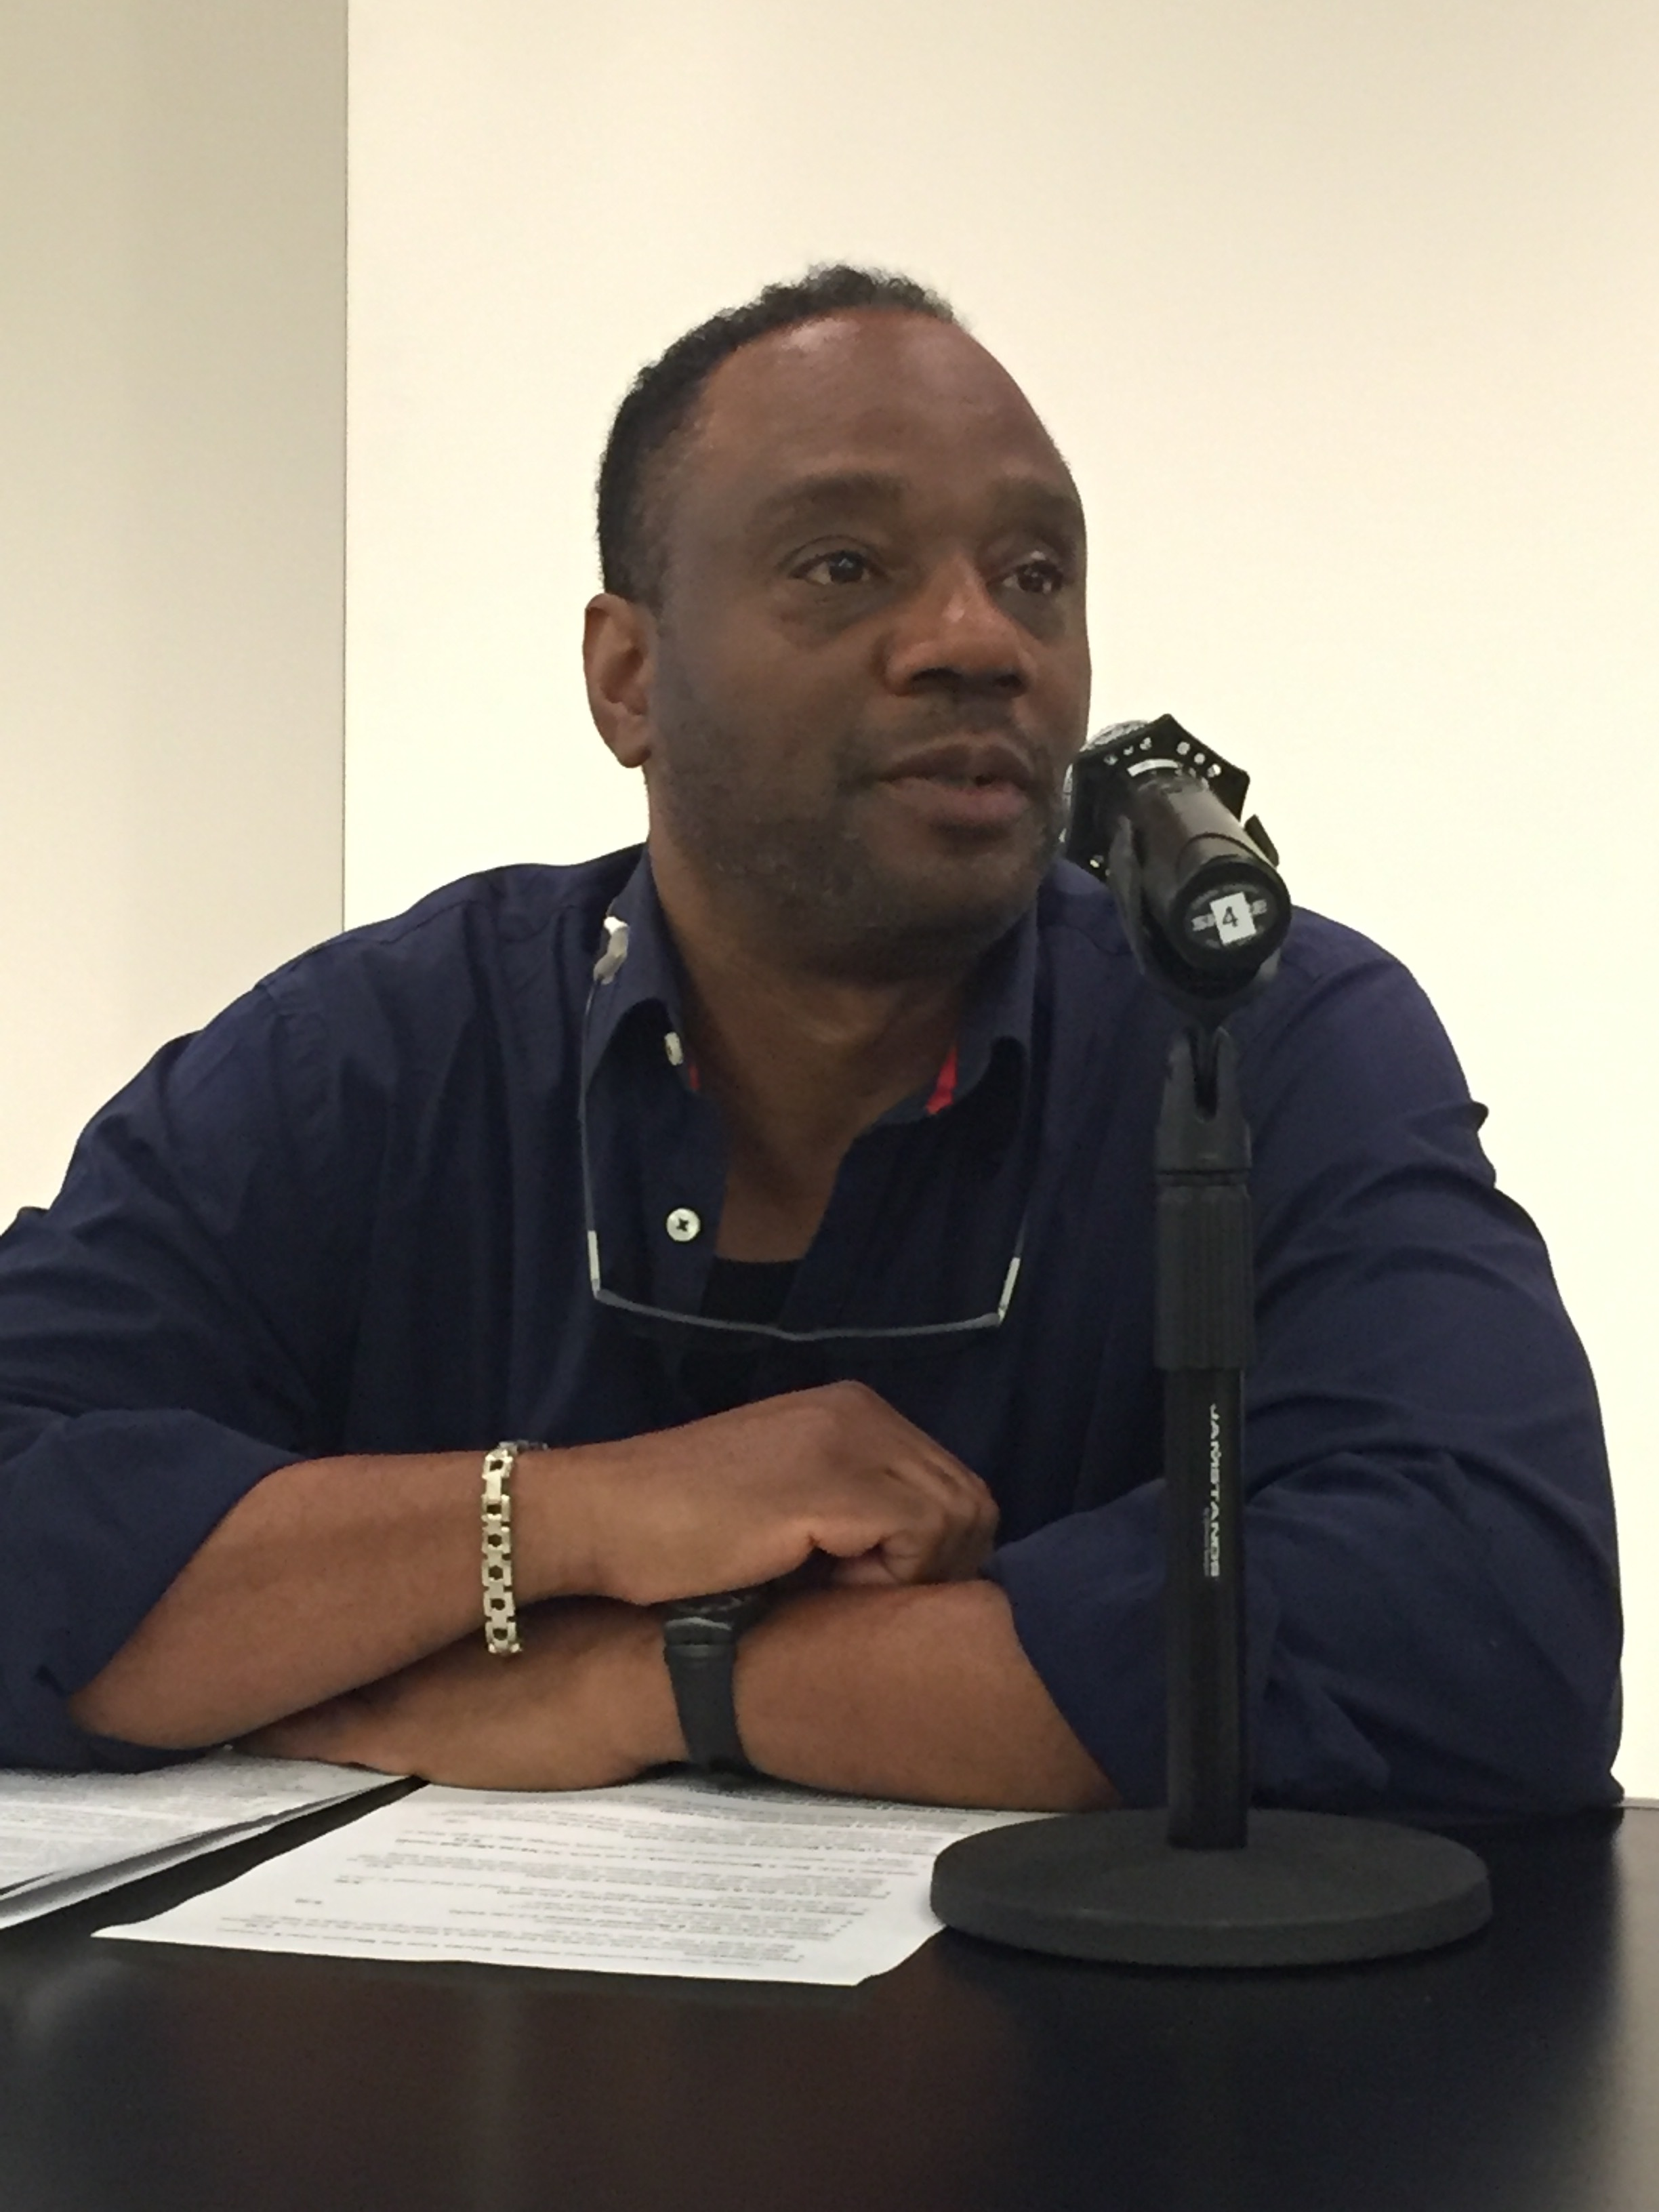 IRCA recipient Stedrot Cleghorne speaks about life as a black immigrant